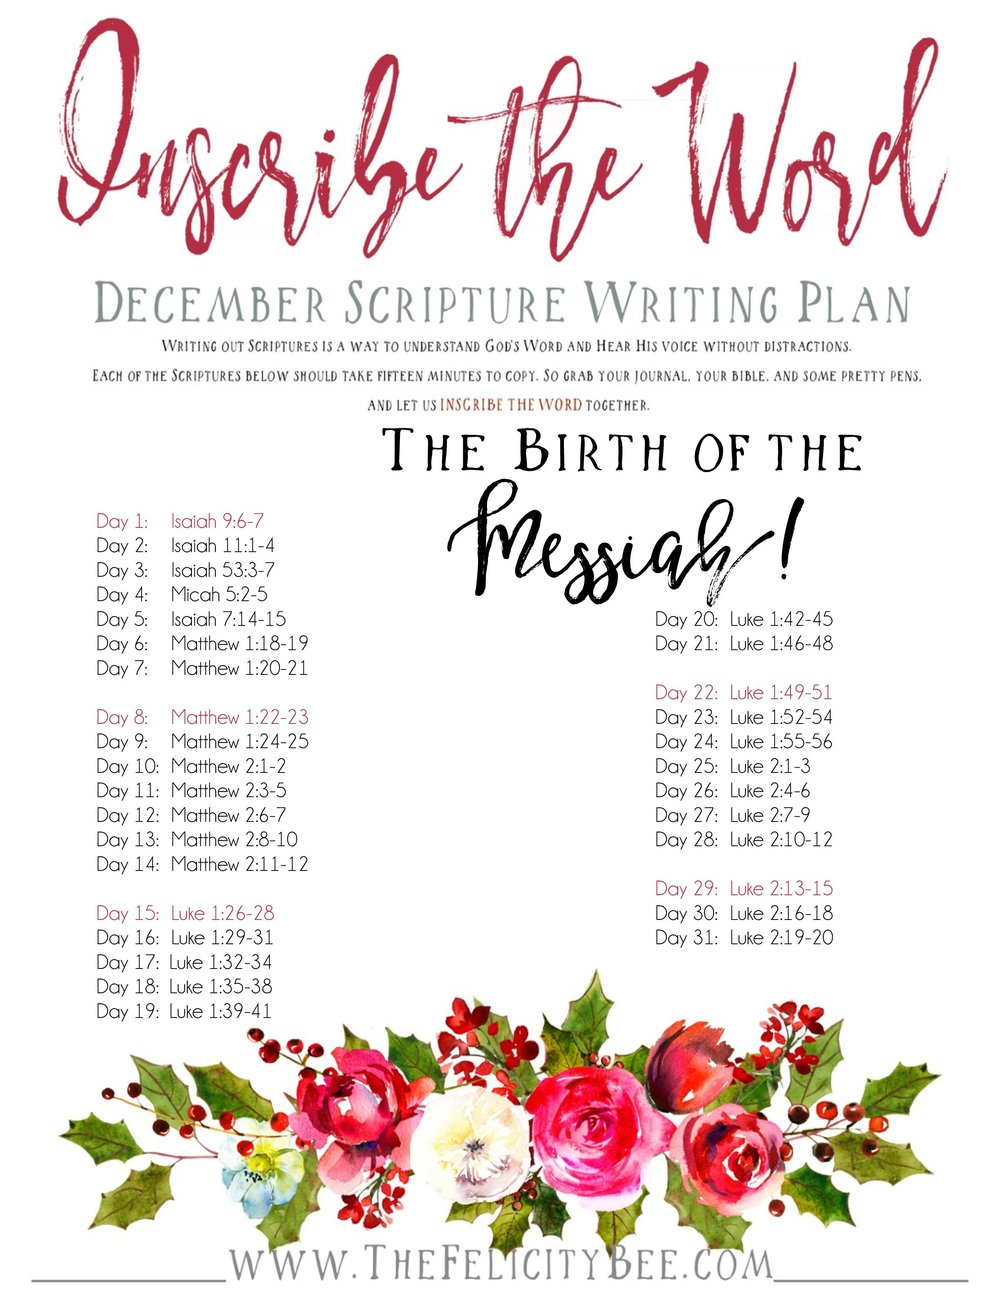 CLICK HERE  to download your December Scripture Writing Plan.  CLICK HERE  to download your December Scripture Writing Plan for the kiddos!